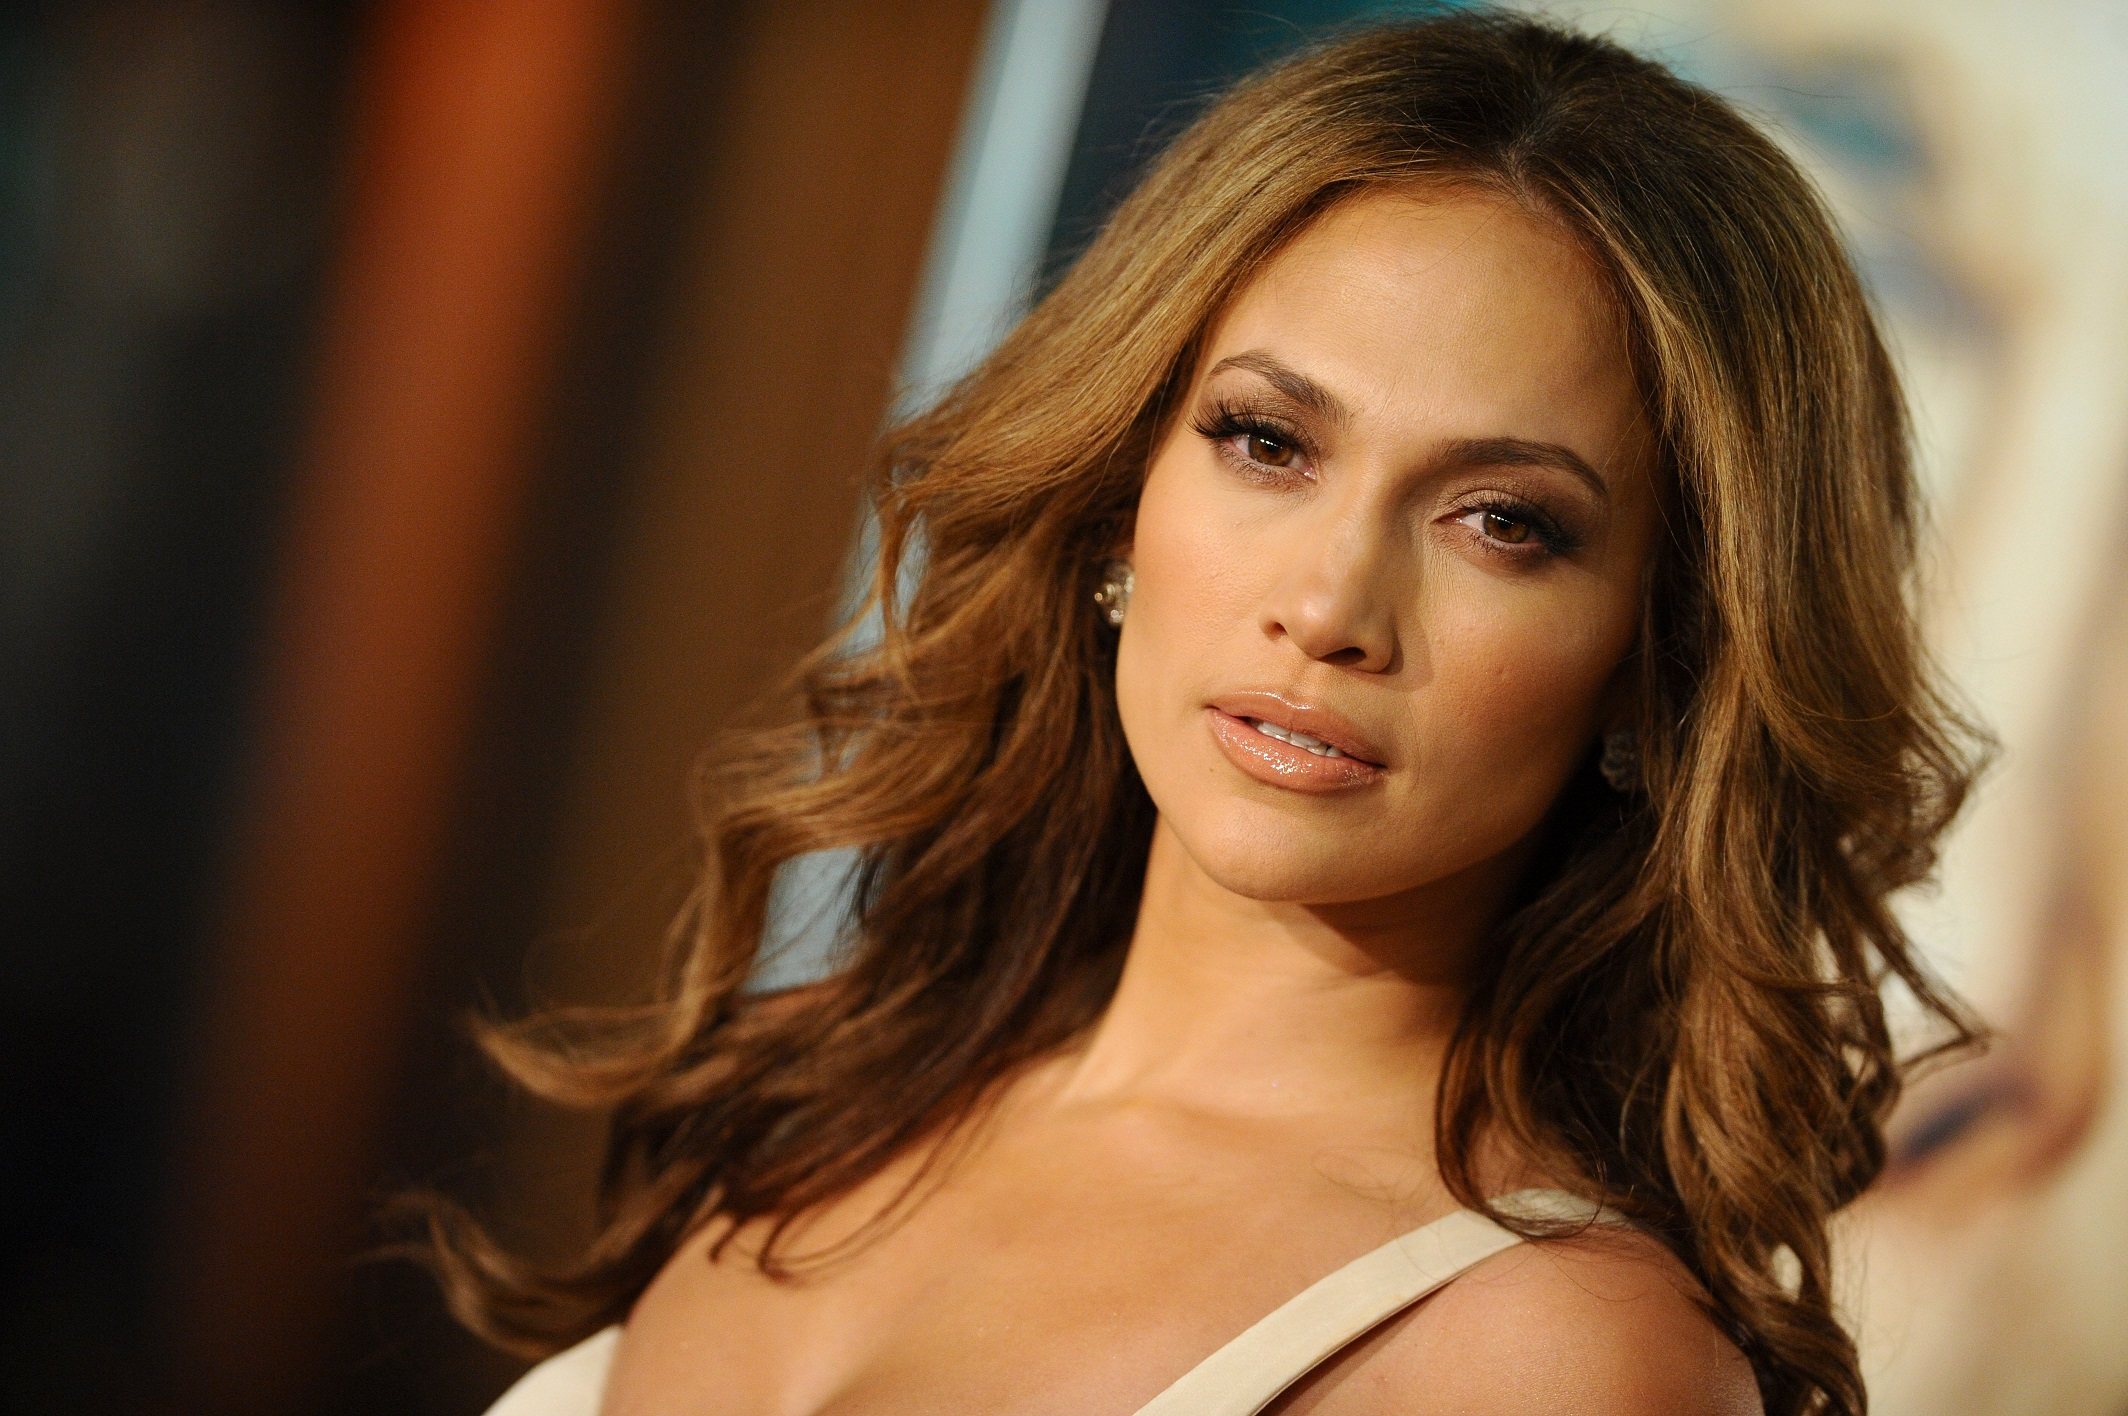 (Can't Believe) This Is Me - Jennifer Lopez